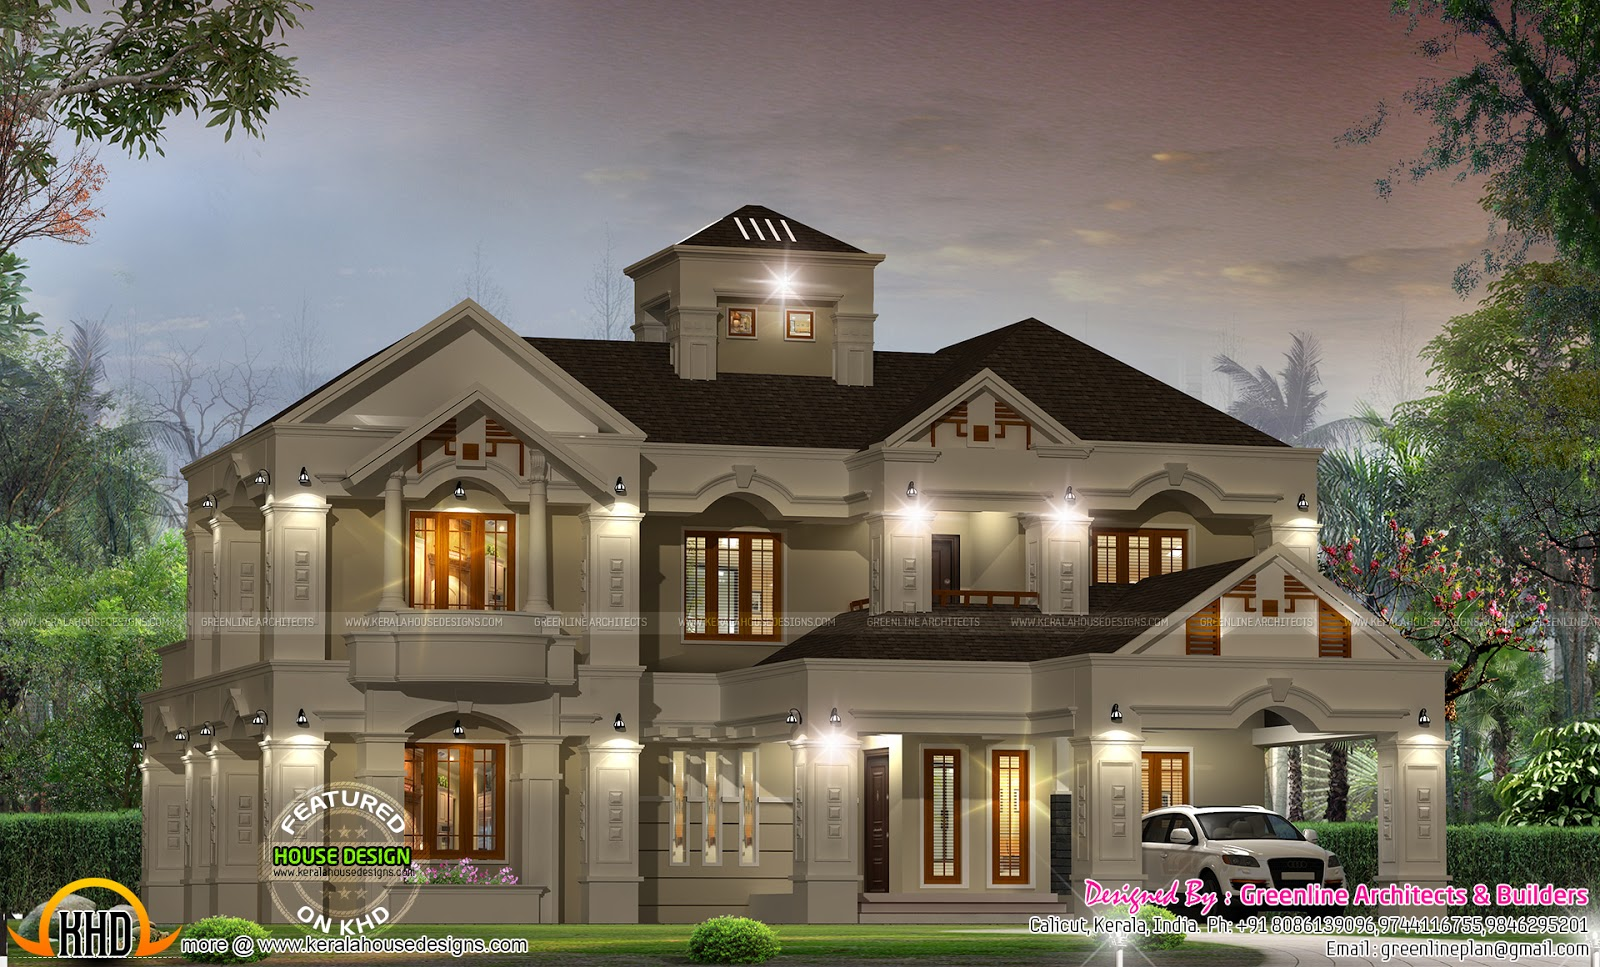 Luxury villa design in kerala kerala home design and for Villa plans in kerala